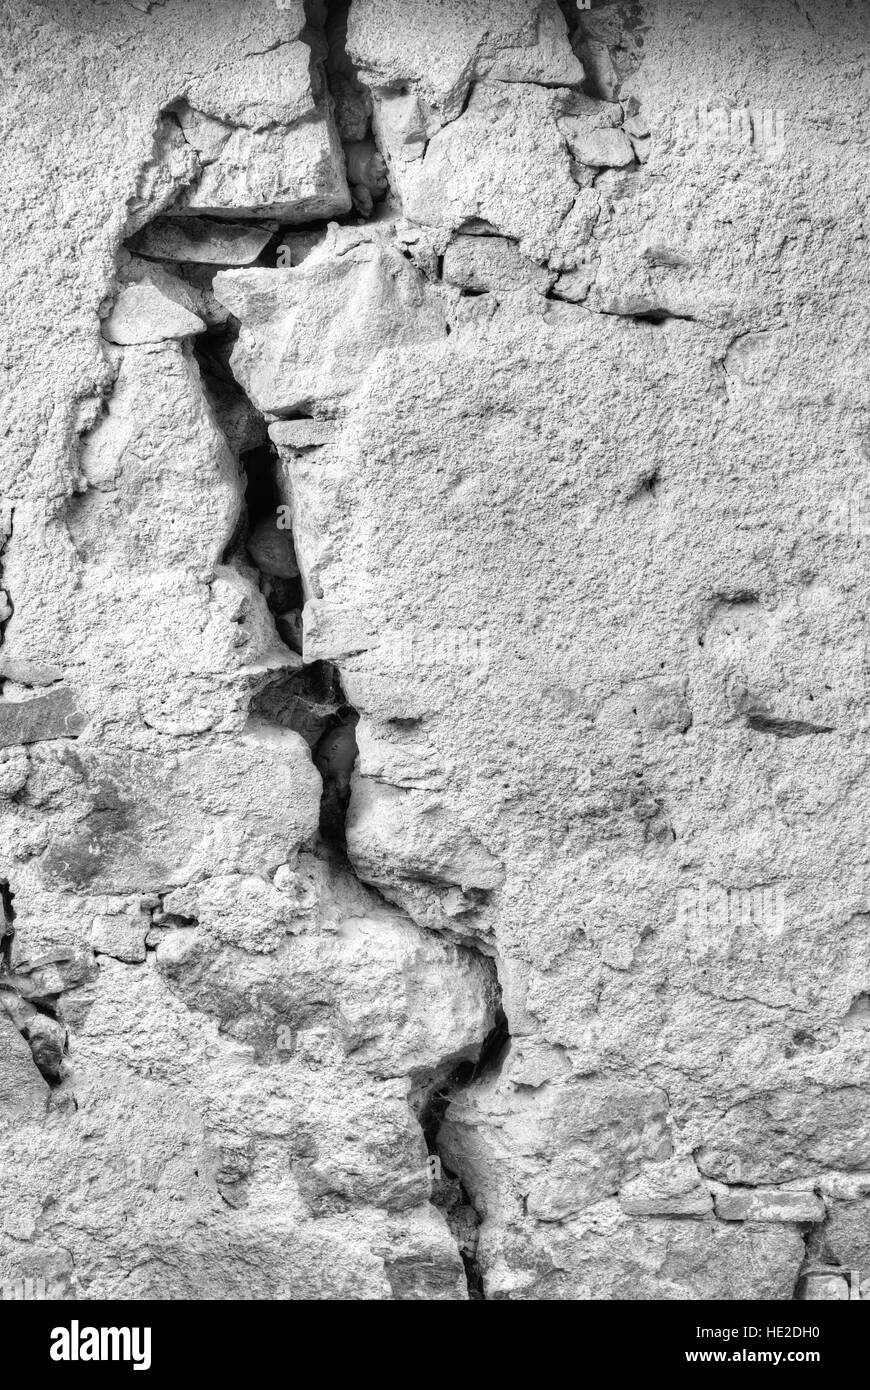 Big fissure in a house wall in black and white - Stock Image